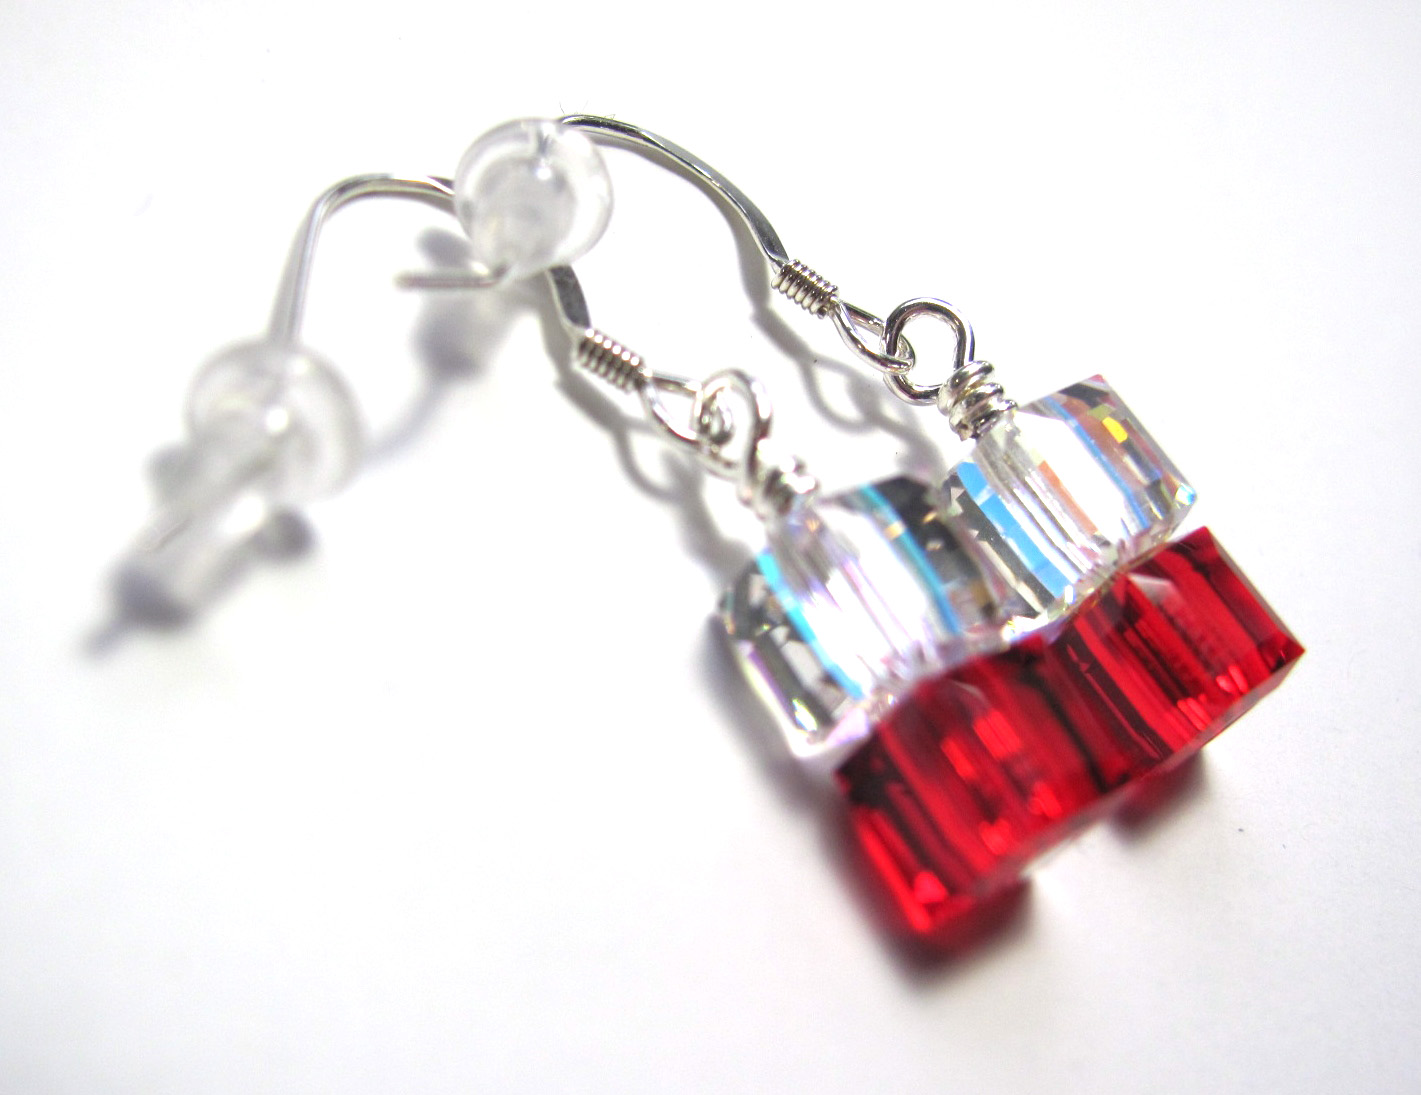 44d6ee4c1bf22 Siam & Iridescent Earrings - Swarovski Crystal Beaded 8mm Cube Earrings